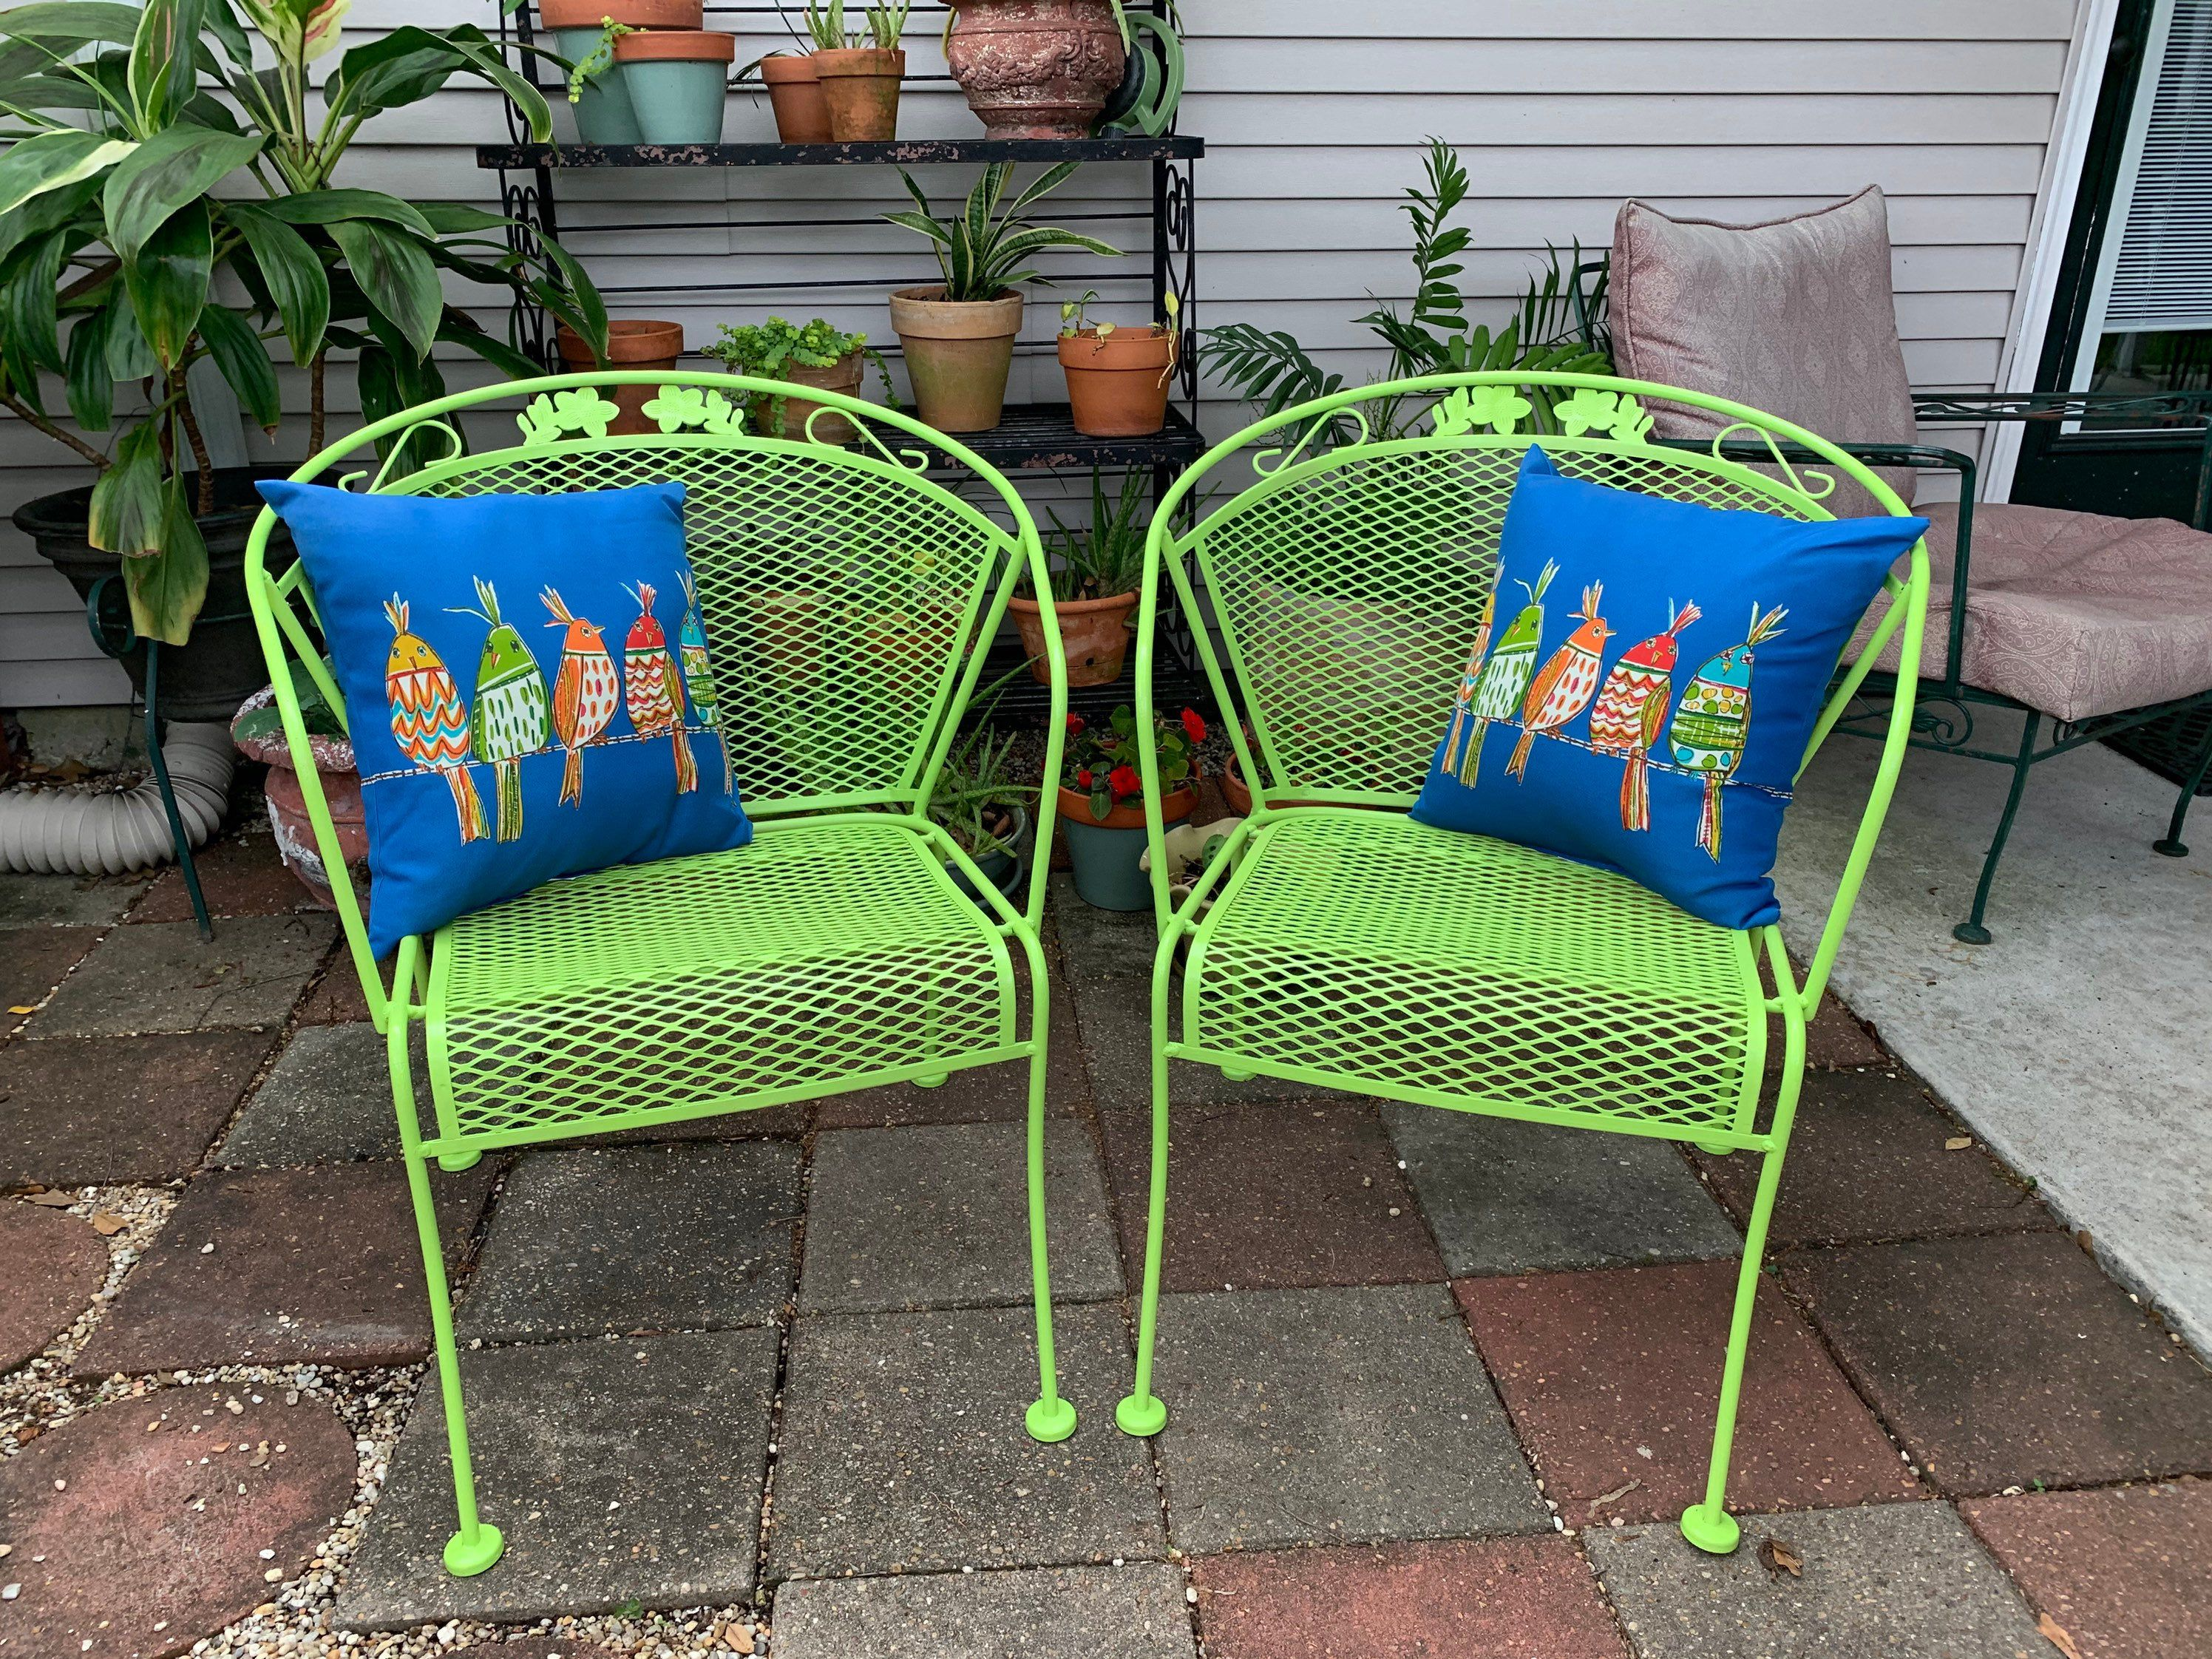 Excited To Share This Item From My Etsy Shop Pair Of Wrought Iron Barrel Patio Chairs Lime Green Pillows Vintage Lime Green Pillows Green Pillows Mesh Chair